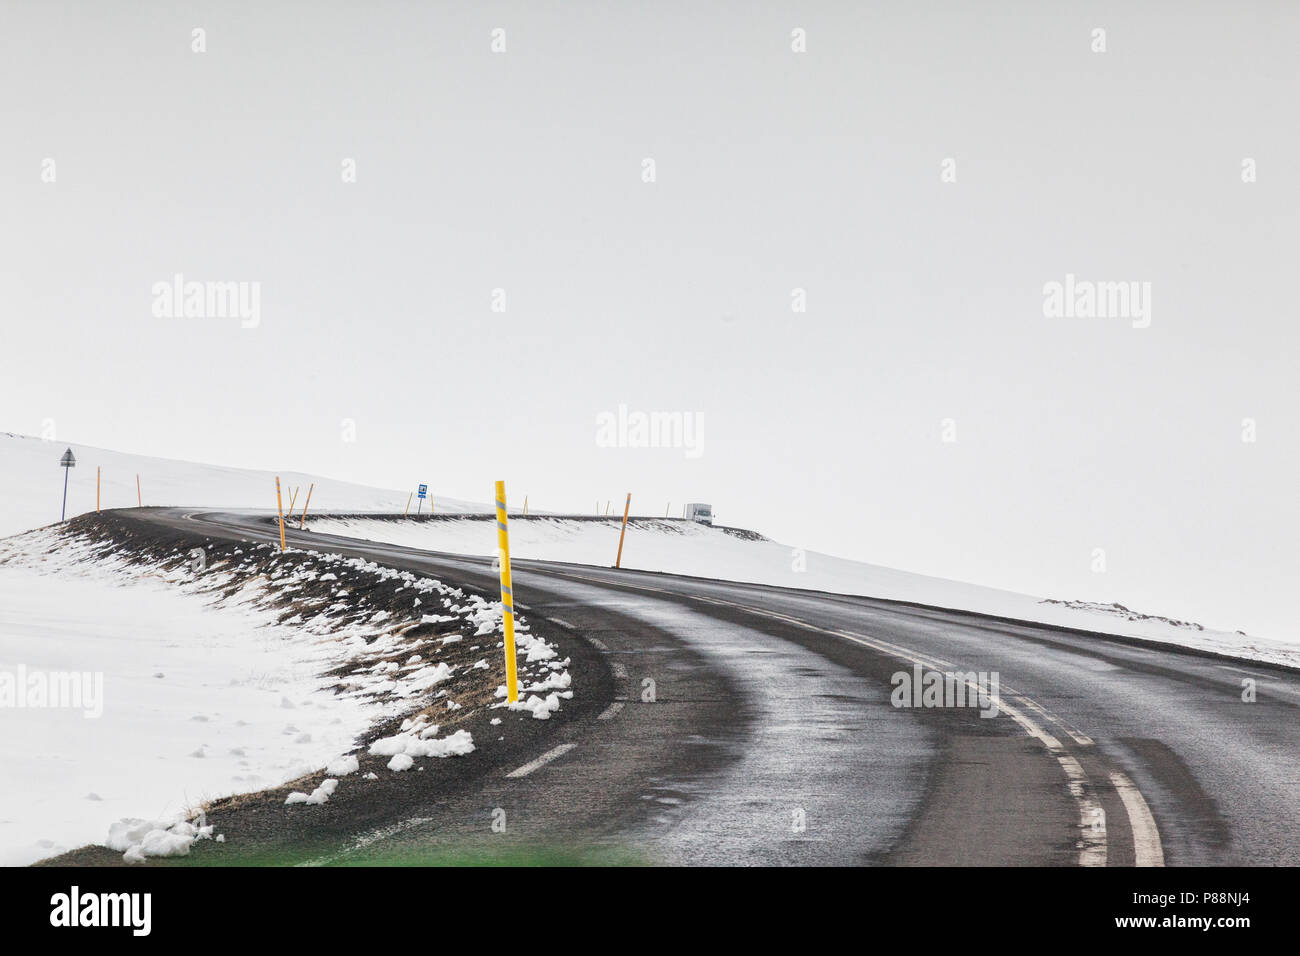 Through the windscreen shot of a tarmac road in East Iceland in foggy weather conditions, with a double bend and a distant truck or lorry. - Stock Image